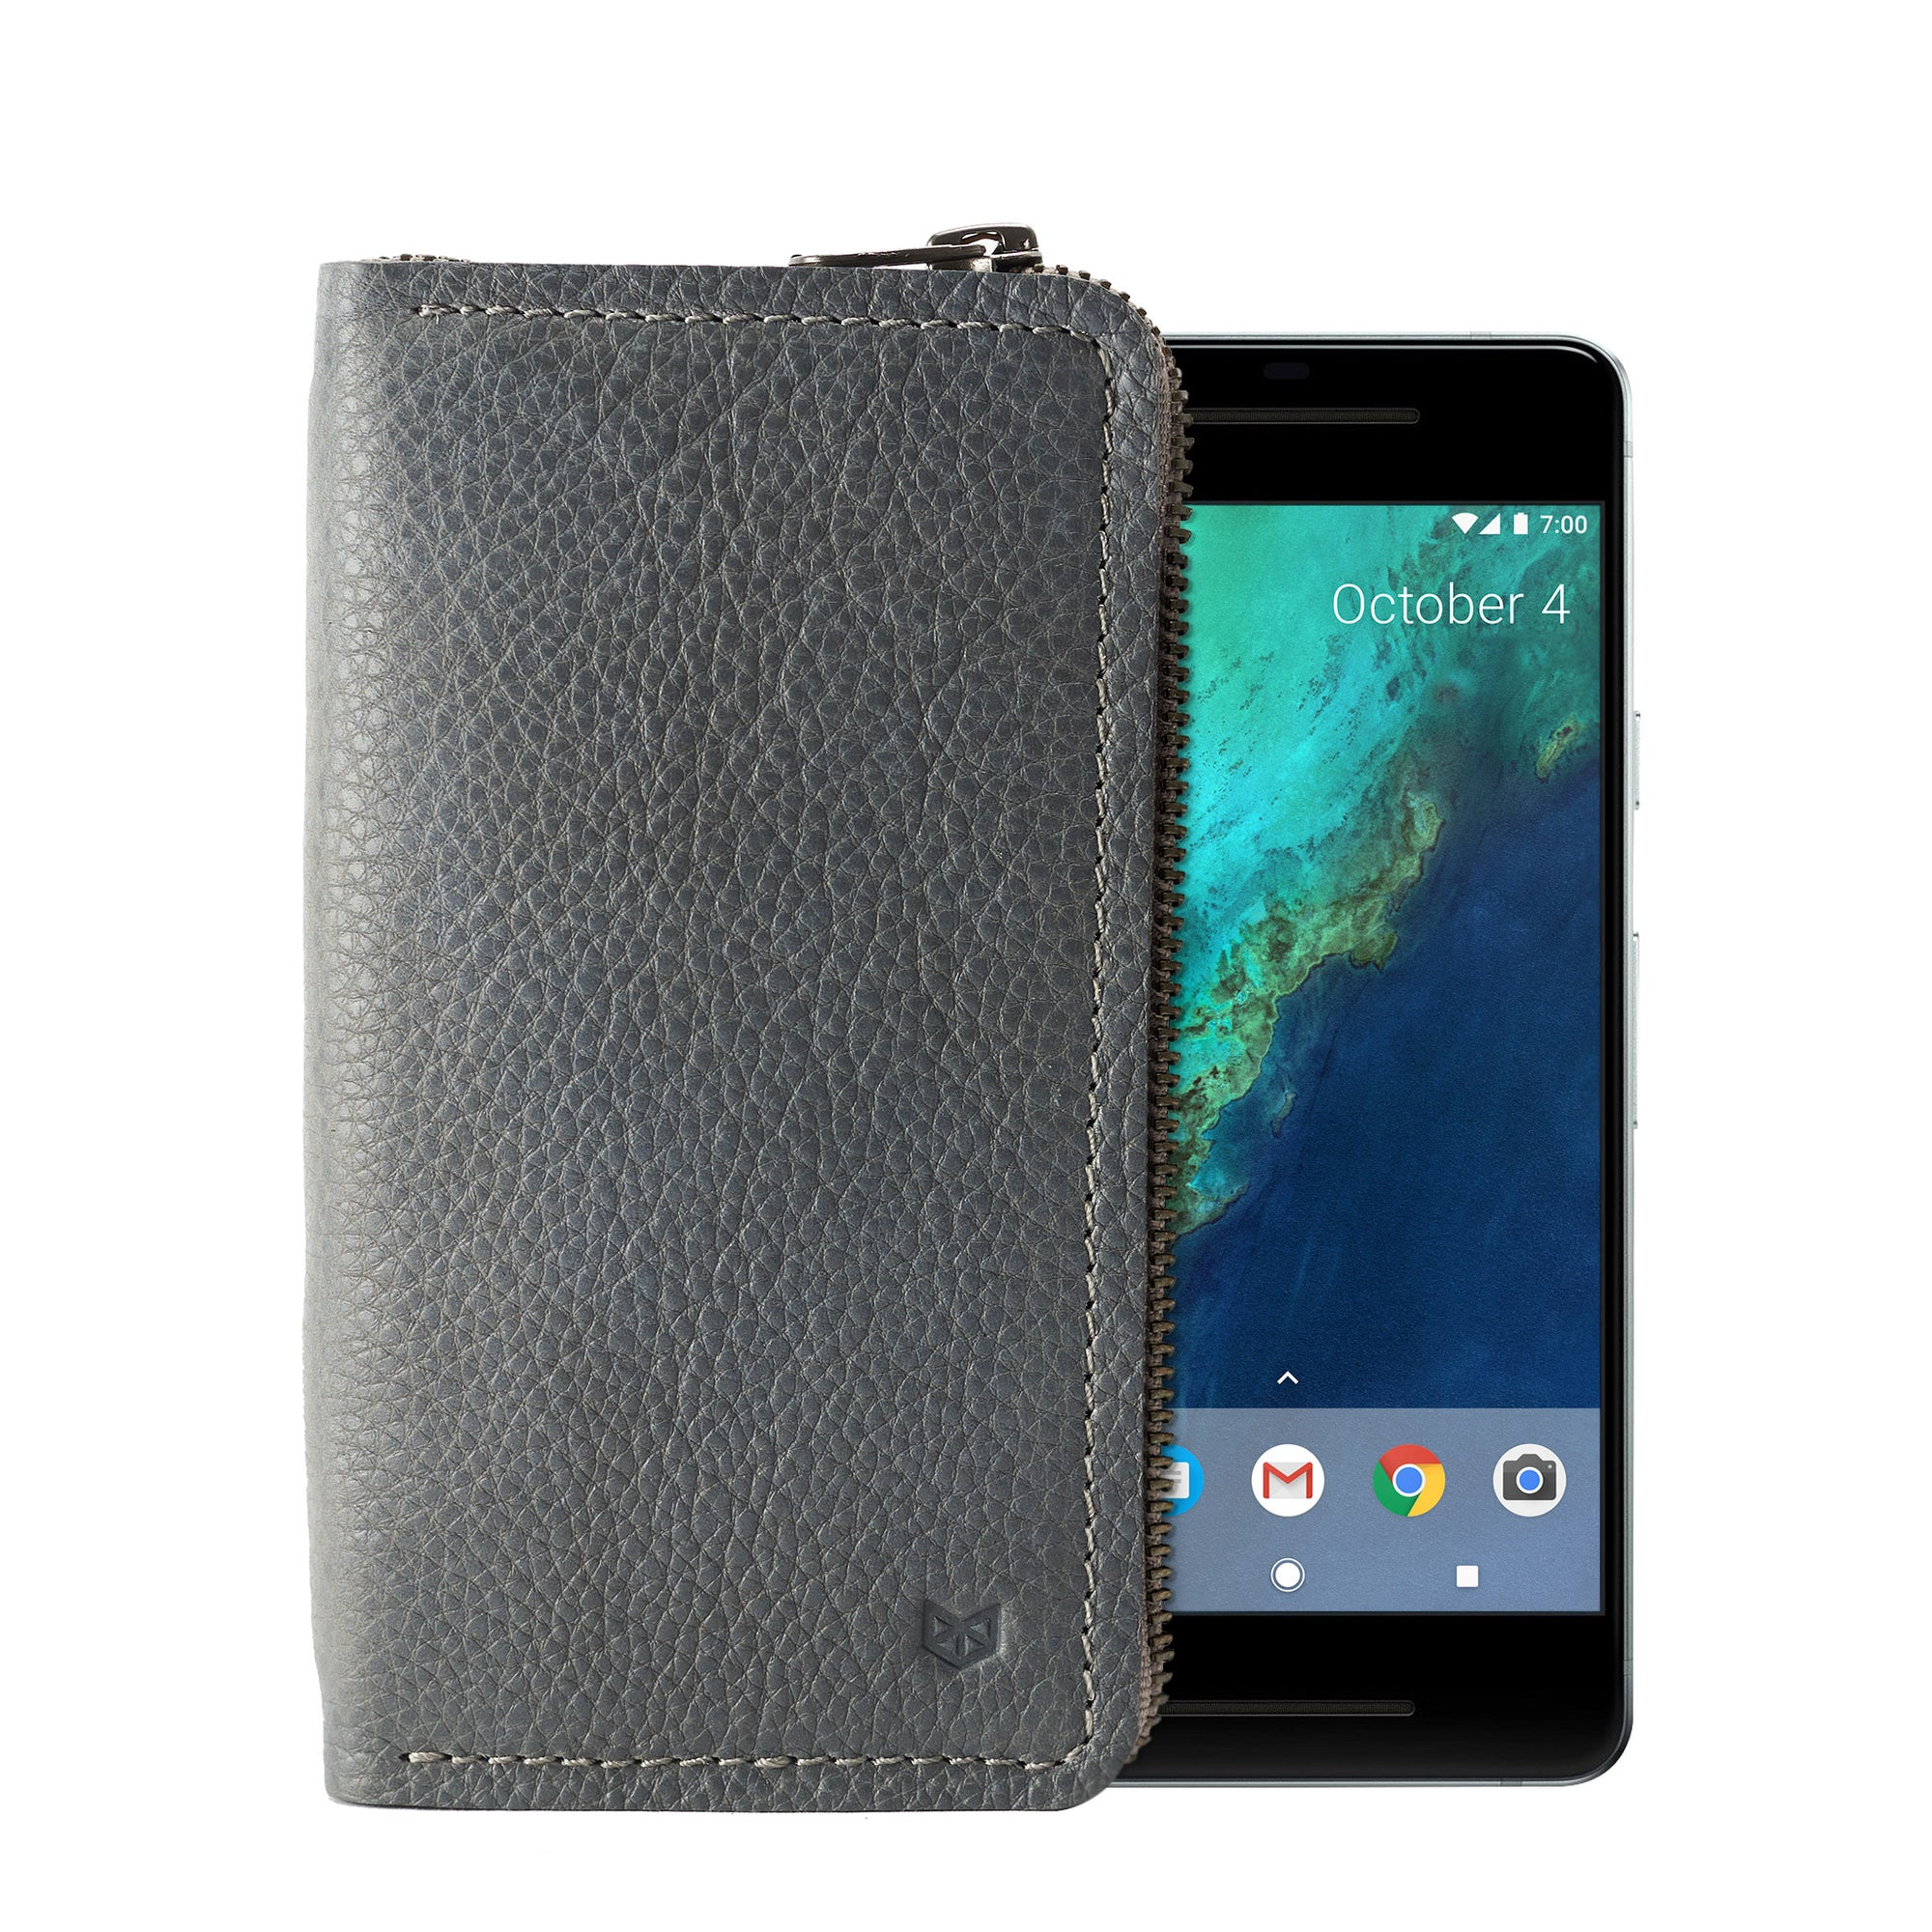 Grey Carefully handcrafted leather case stand wallet for new Google Pixel 2 and 2 XL. Men's Pixel sleeve with card holder